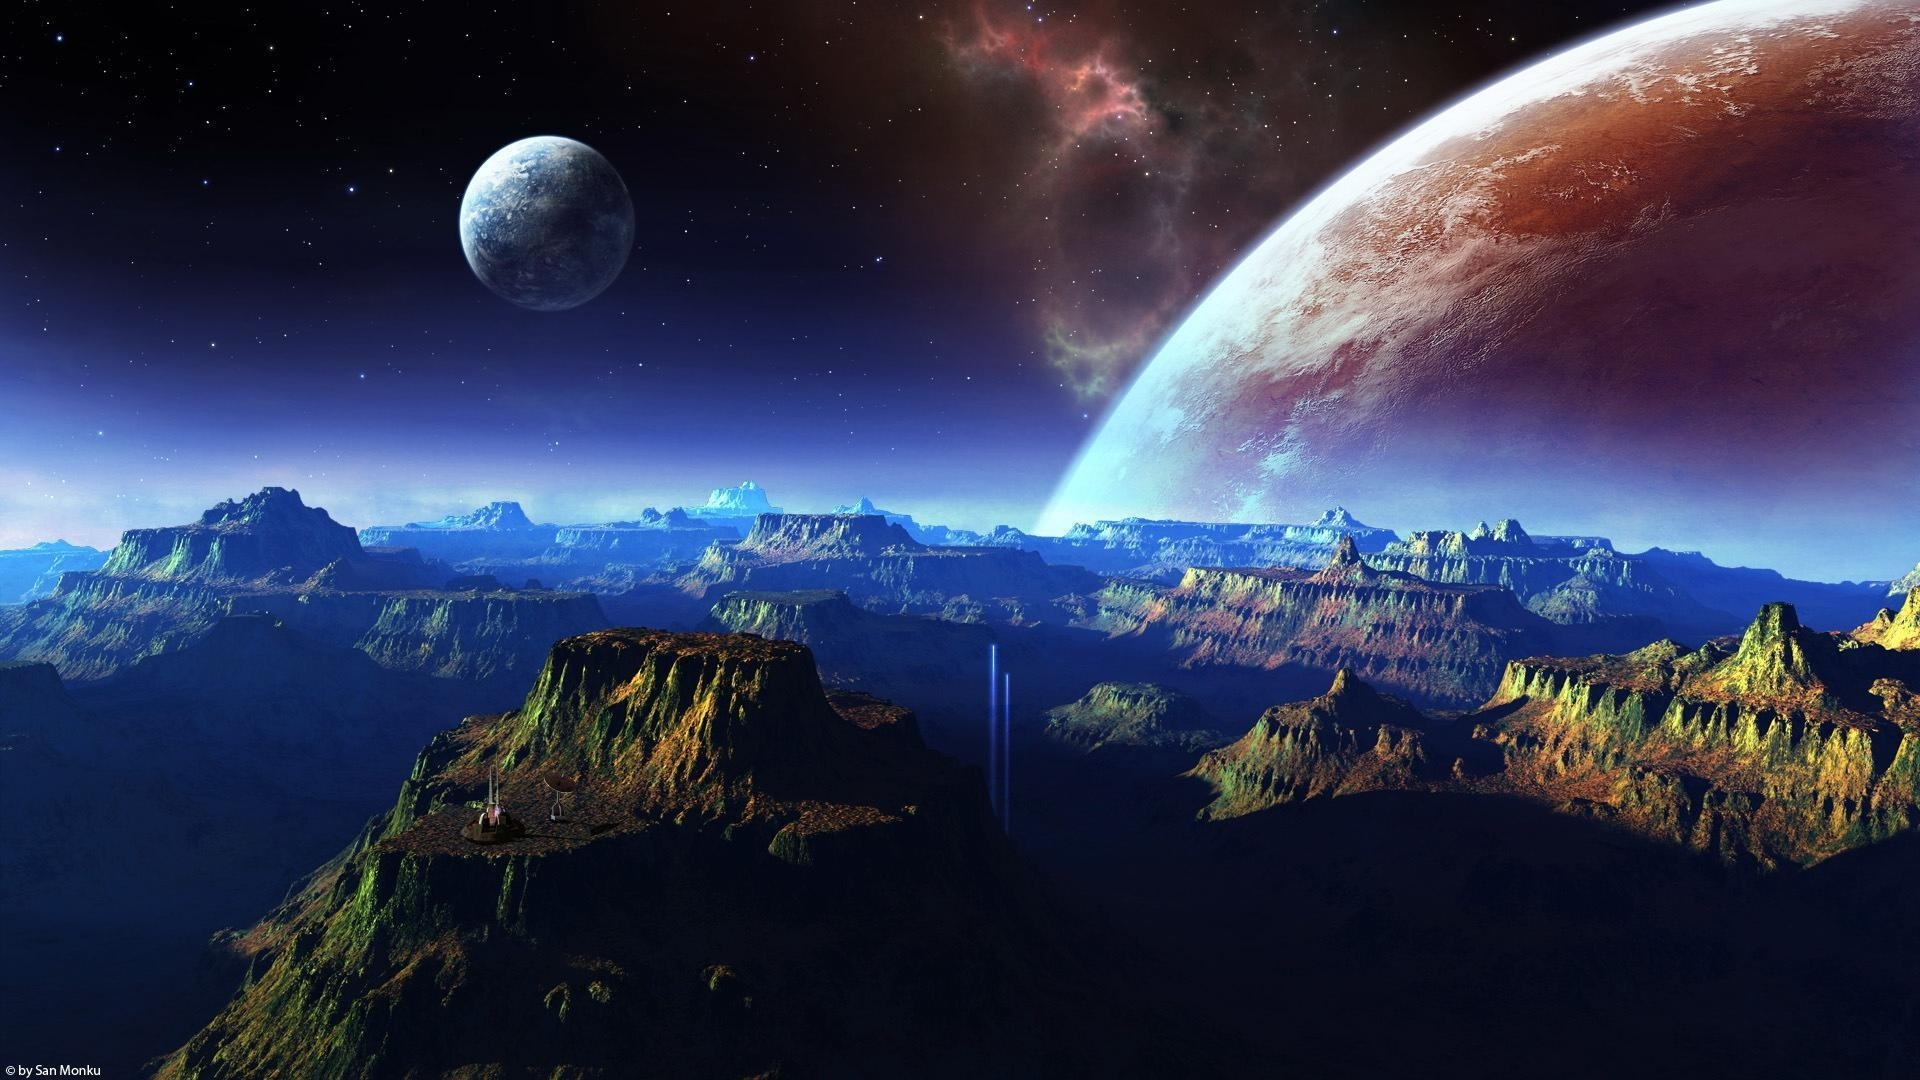 10 New Hd Space Backgrounds 1080p Full Hd 1080p For Pc Desktop: 10 New Hd Space Wallpaper 1080P FULL HD 1920×1080 For PC